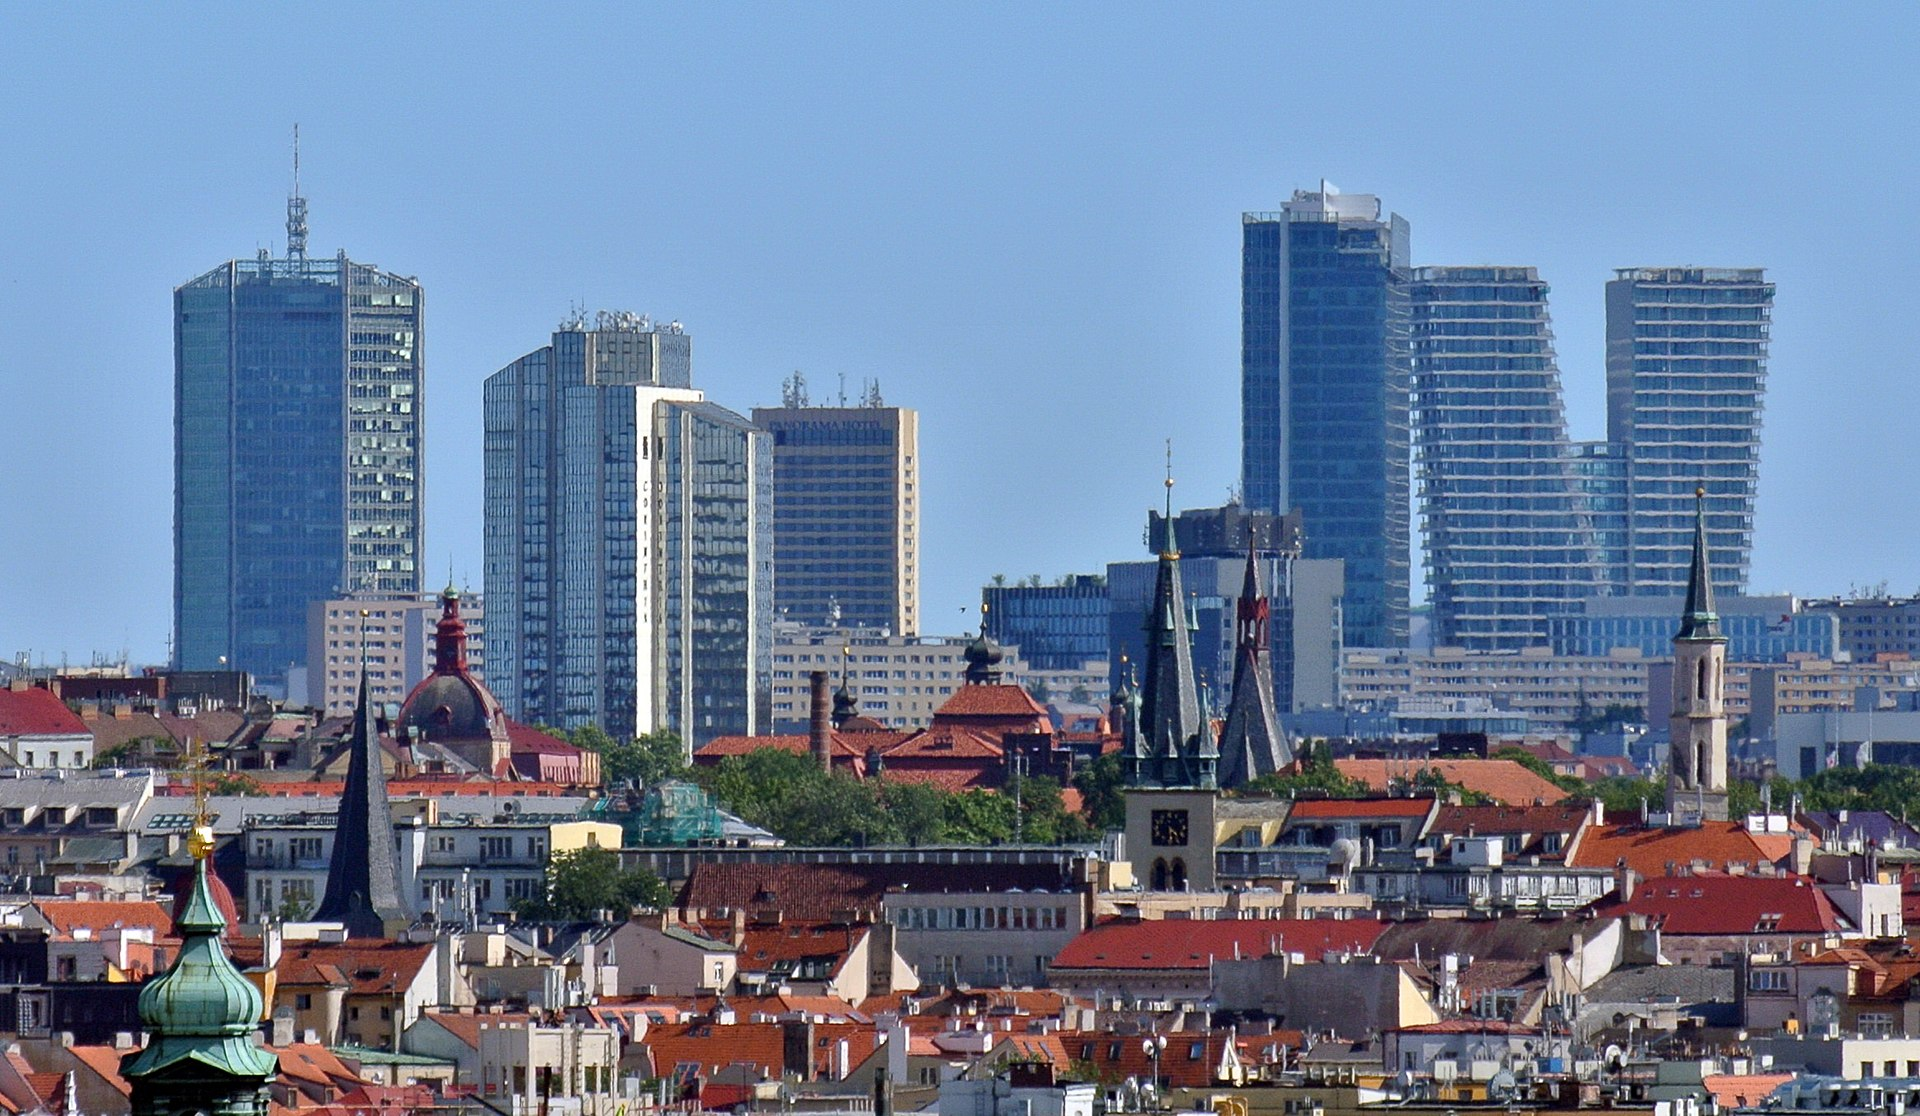 It's interesting to note that on October 7, 2019, Prague, the capital of the Czech Republic and the seat of the government, decided to terminate its sister city pact with Beijing. (Image: Jirka.h23 via wikimedia CC BY-SA 4.0)